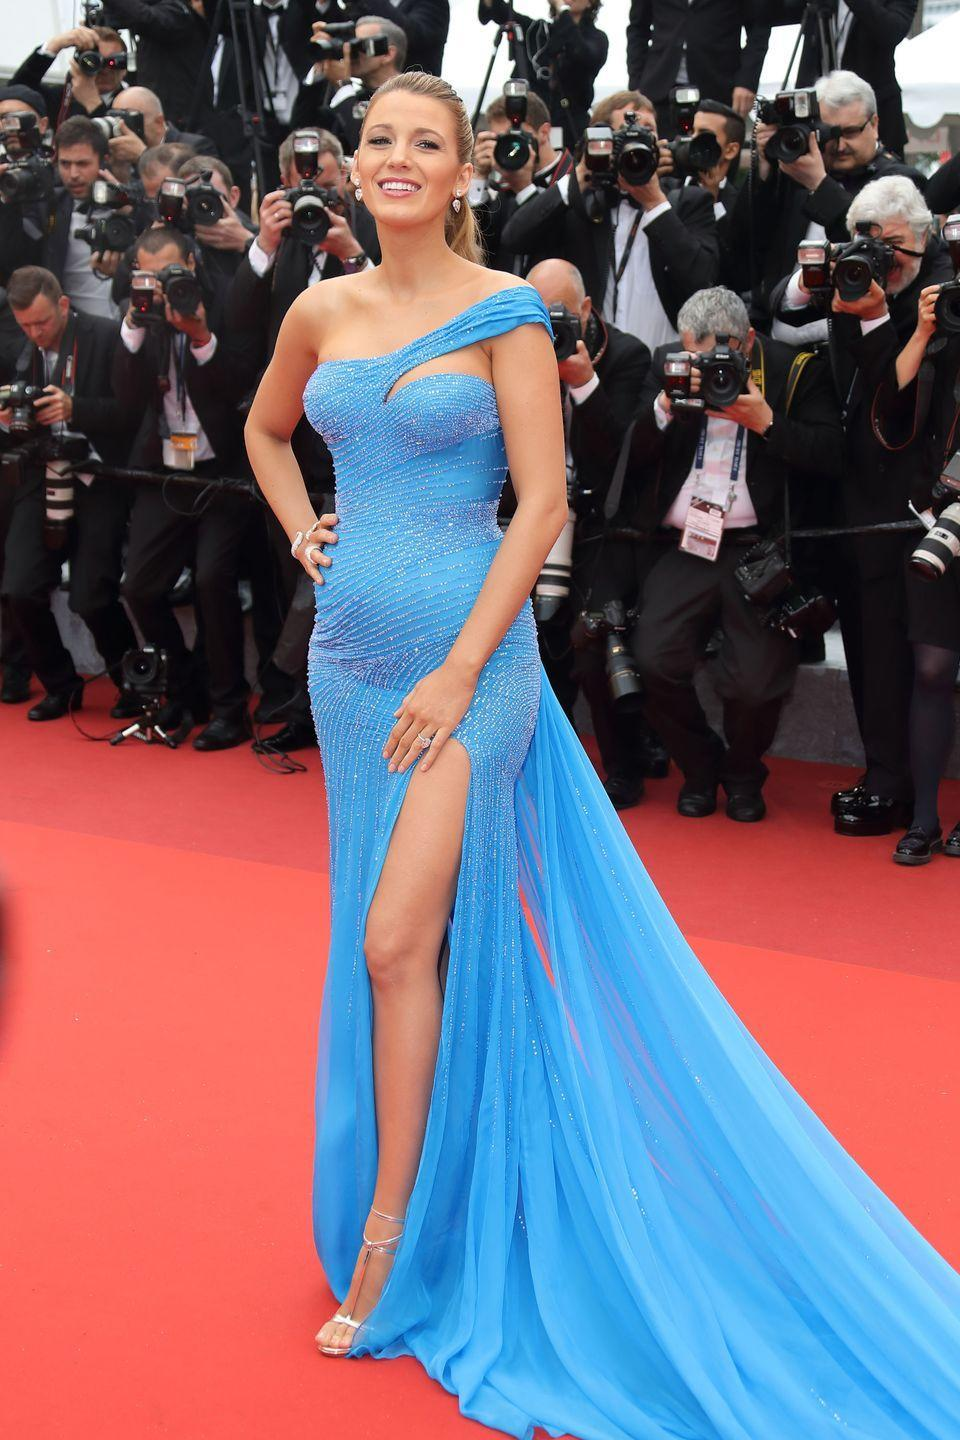 <p>Blake Lively channeled Queen Elsa at the<em> BFG</em> screening at the Cannes Film Festival in 2016 wearing a blue Versace dress with a train.</p>